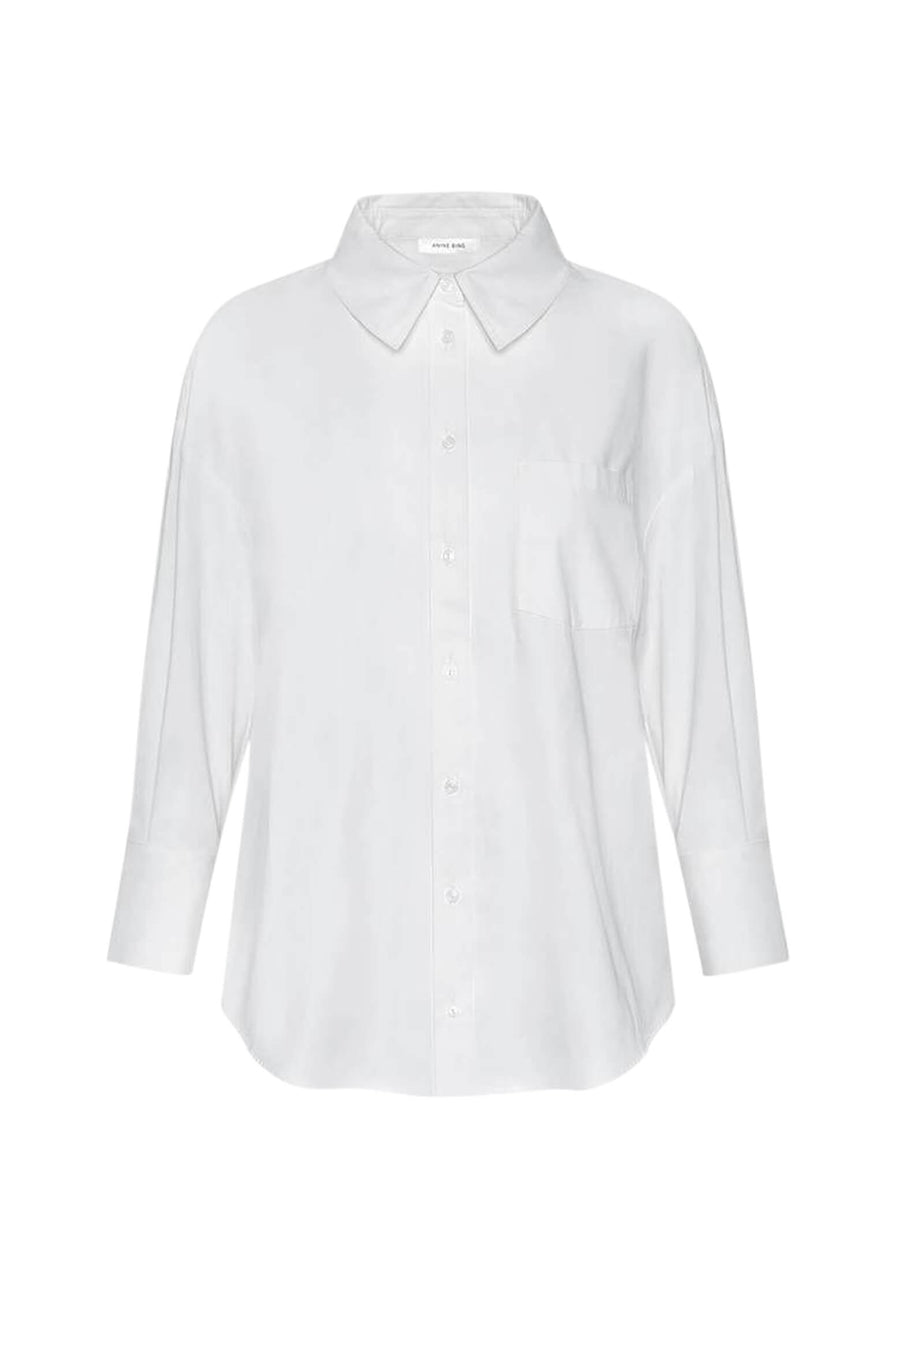 Anine Bing Mika Shirt from The New Trend